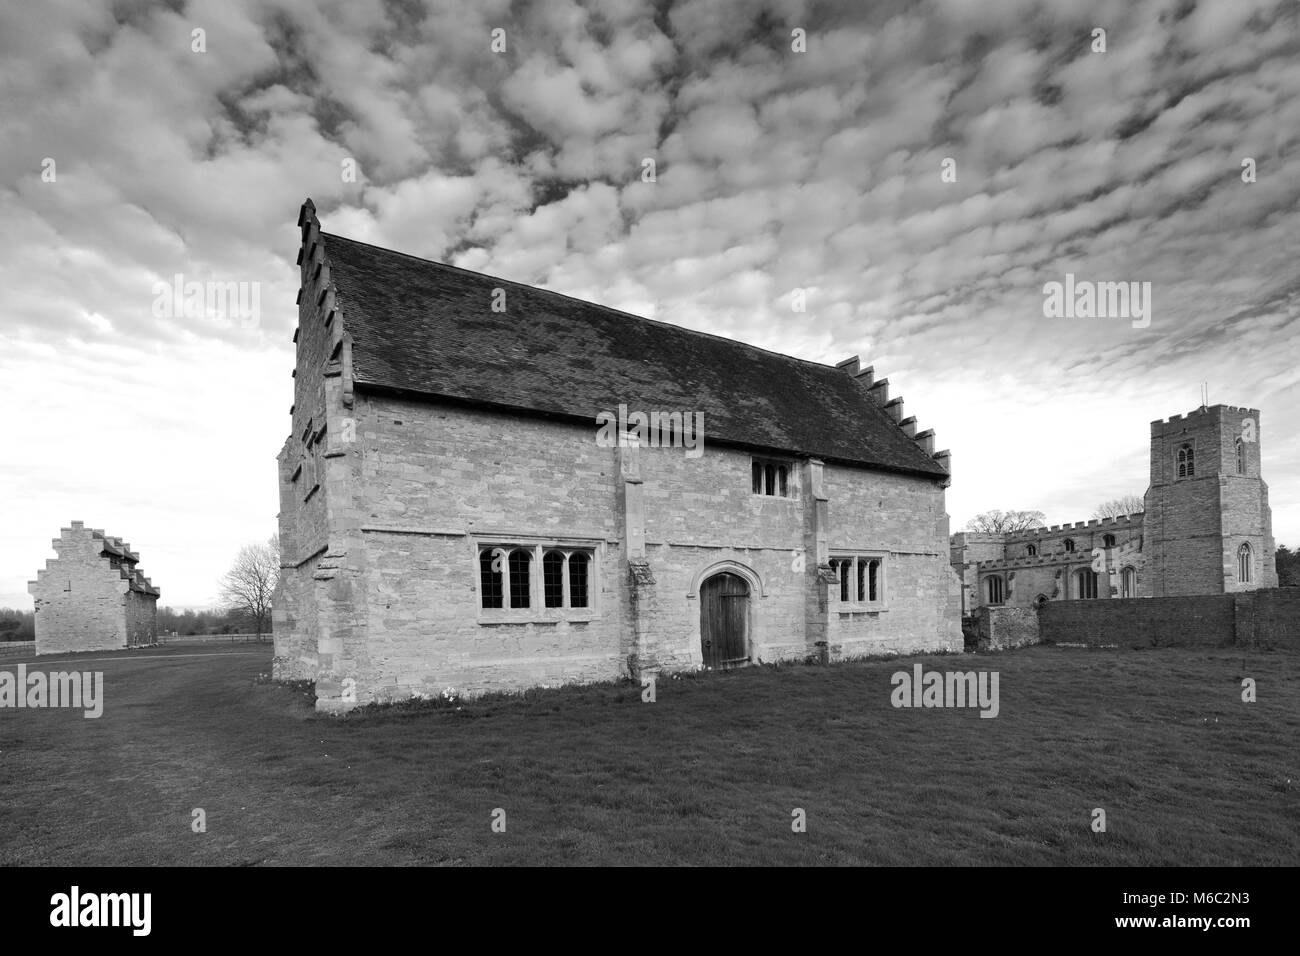 The Willington Dovecote and Stables and St Lawrence church, Willington village, Bedfordshire, England, UK - Stock Image